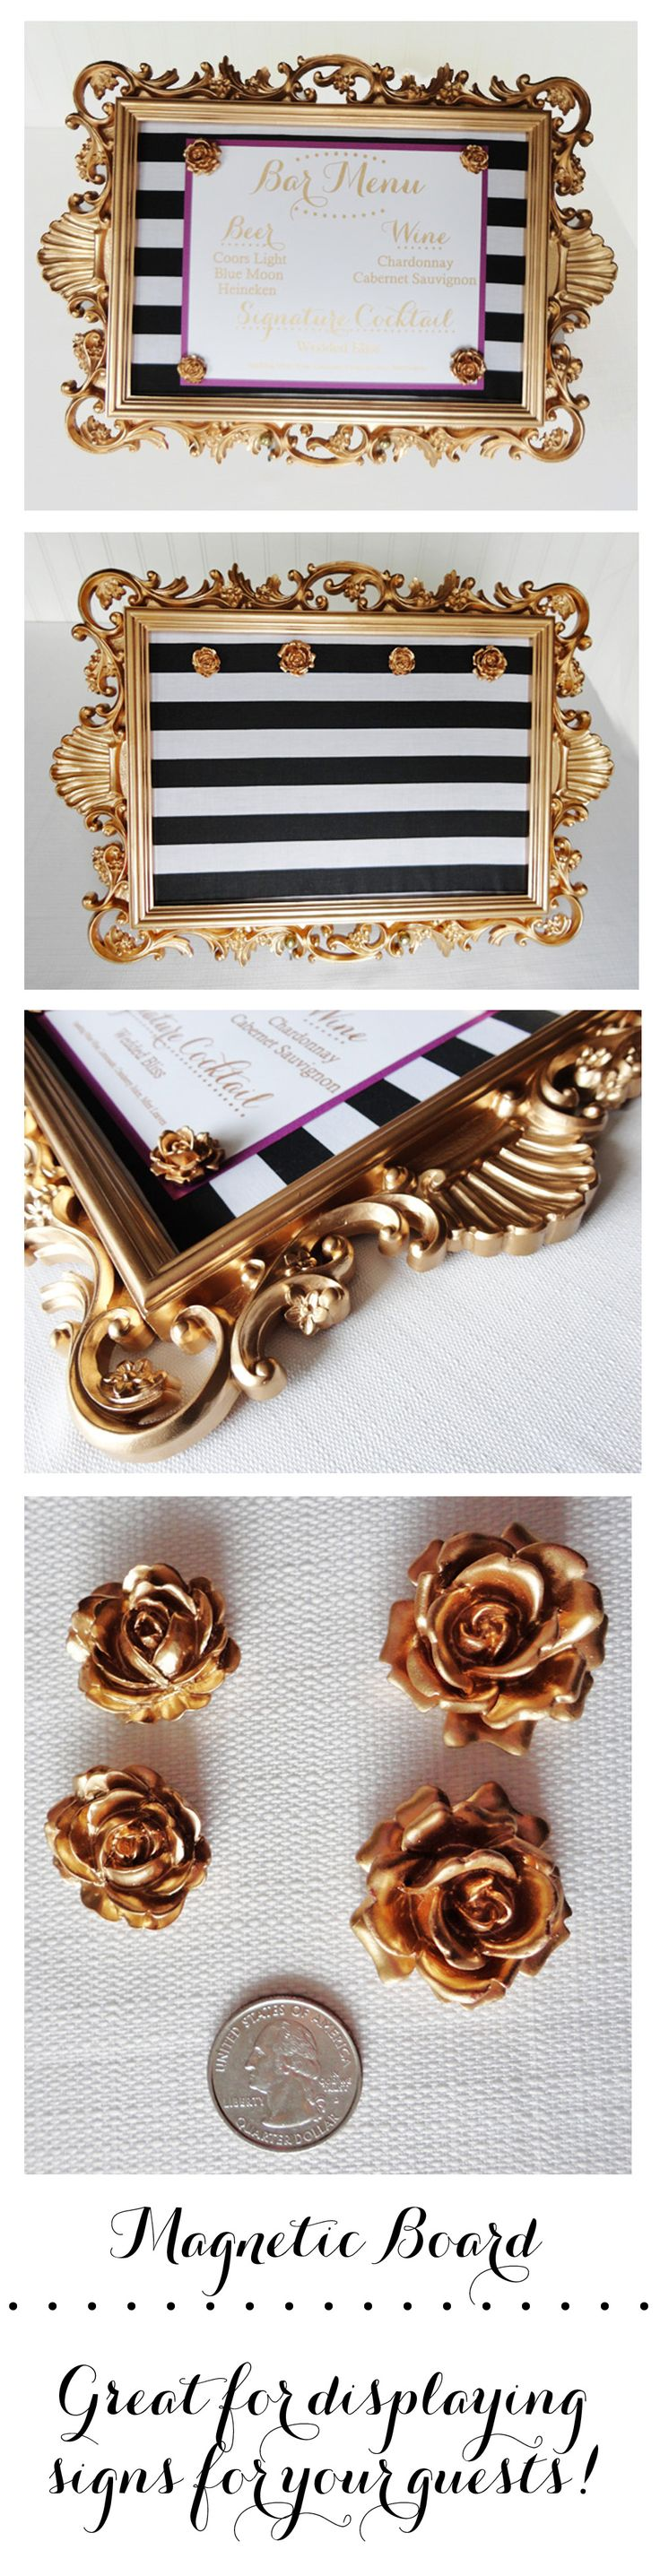 Magnetic message board...perfect addition to your wedding or home decor!  Vintage gold frame with gold rose magnets and black and white striped background.  Custom signs or menus (as pictured) can be made upon request.  2 available now in my store.  https://www.etsy.com/listing/192424082/ornate-gold-framed-magnetic-memo-board?ref=listing-shop-header-2